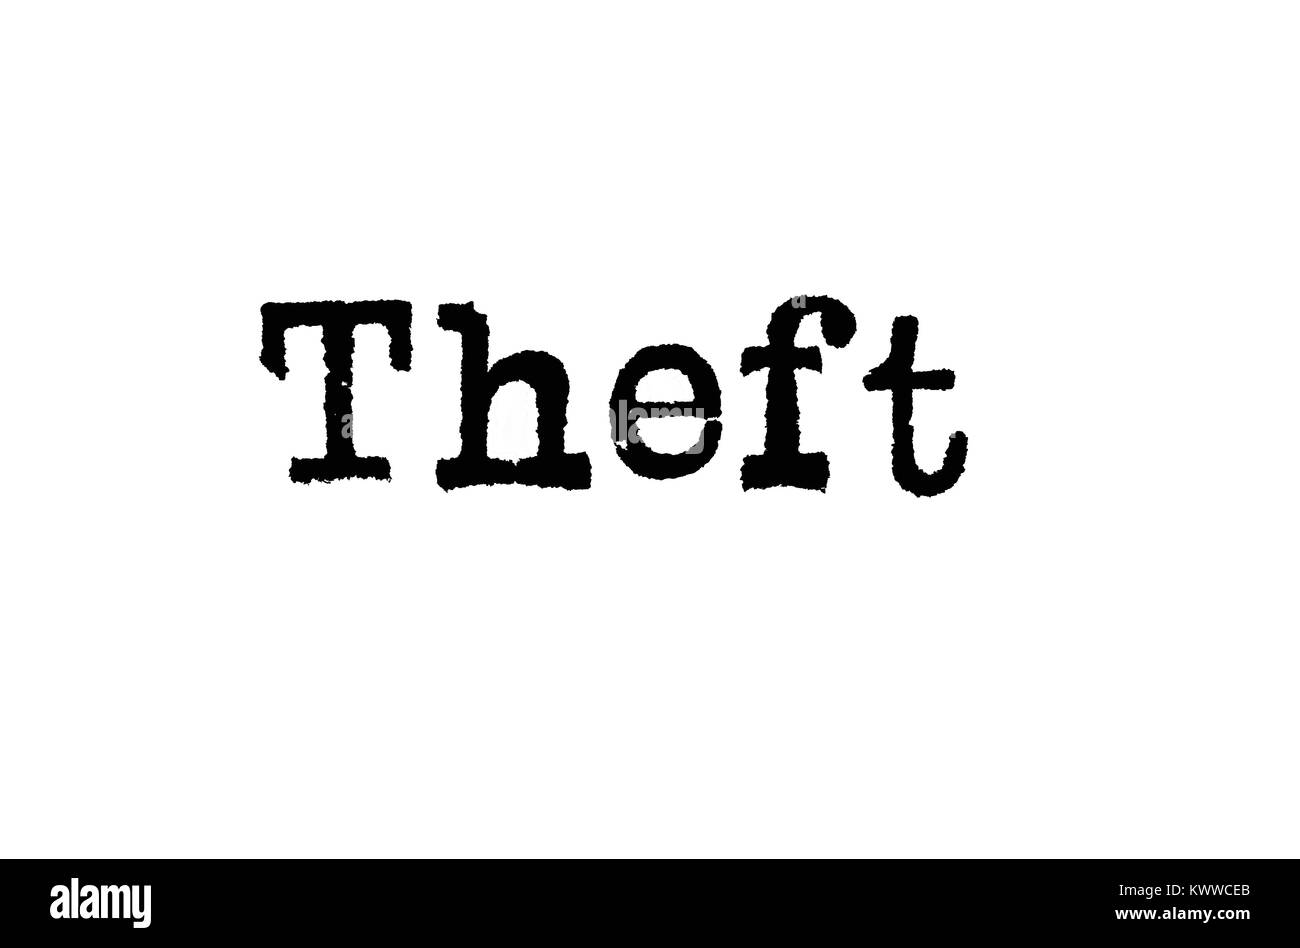 The word 'Theft' from a typewriter on a white background - Stock Image